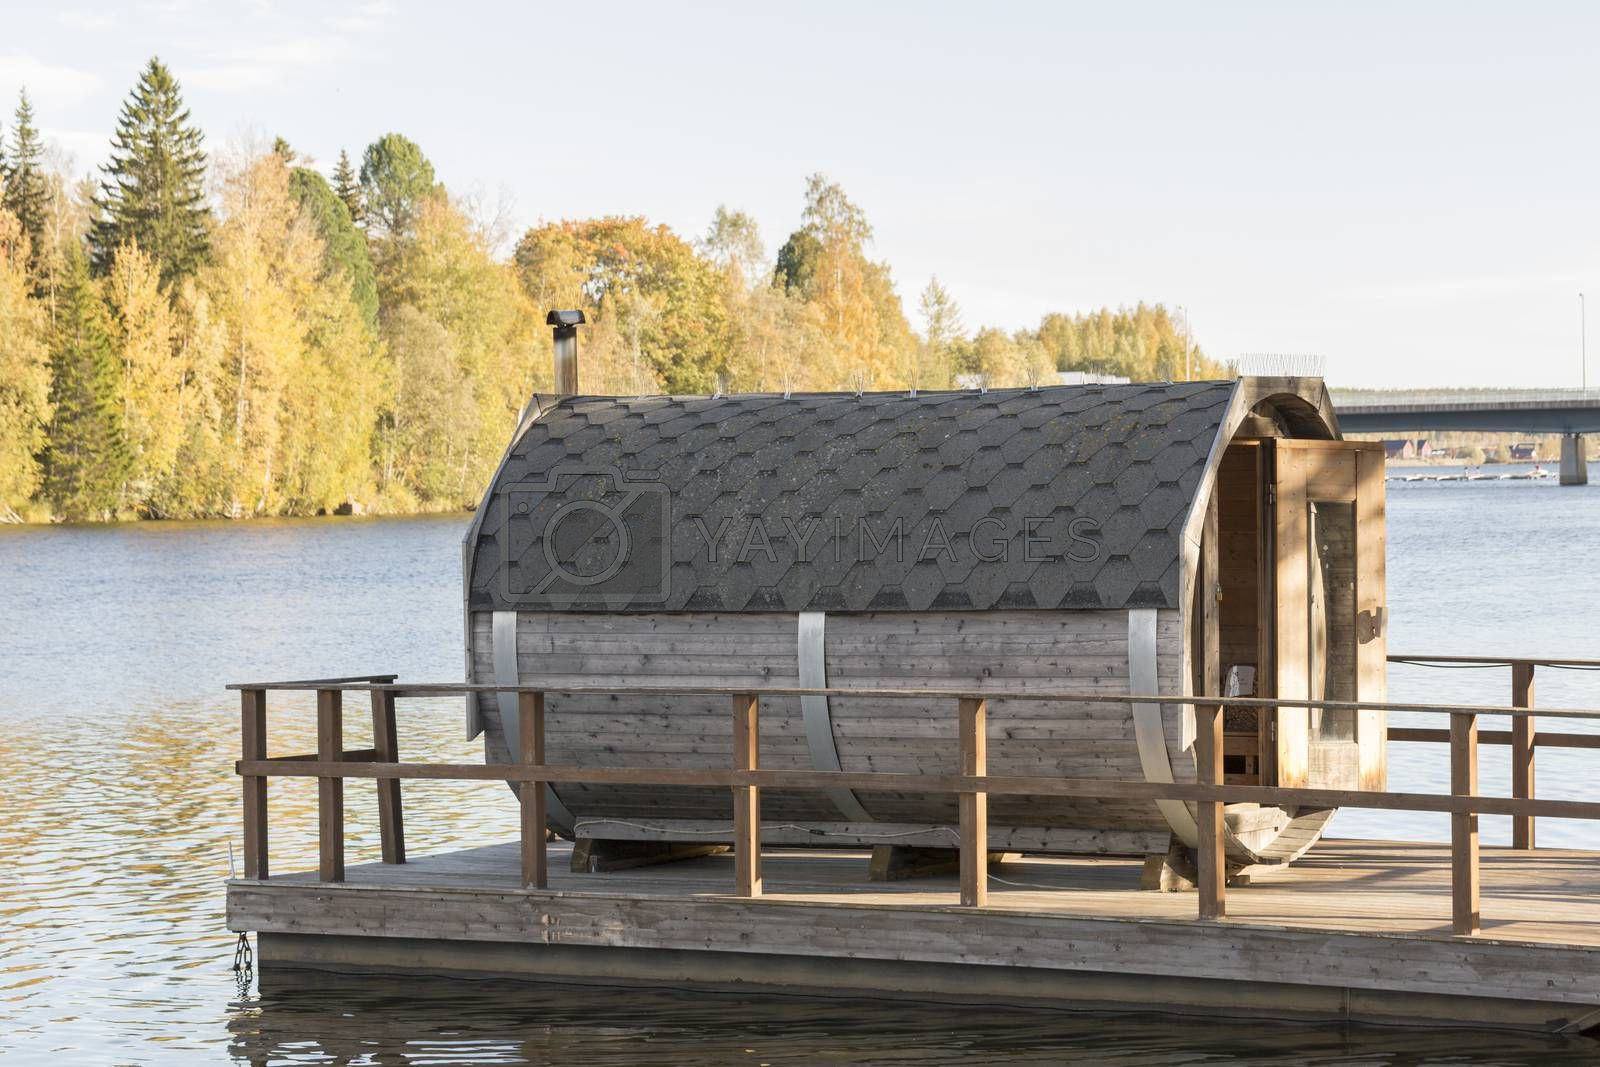 Sauna Floating on River in autumn.